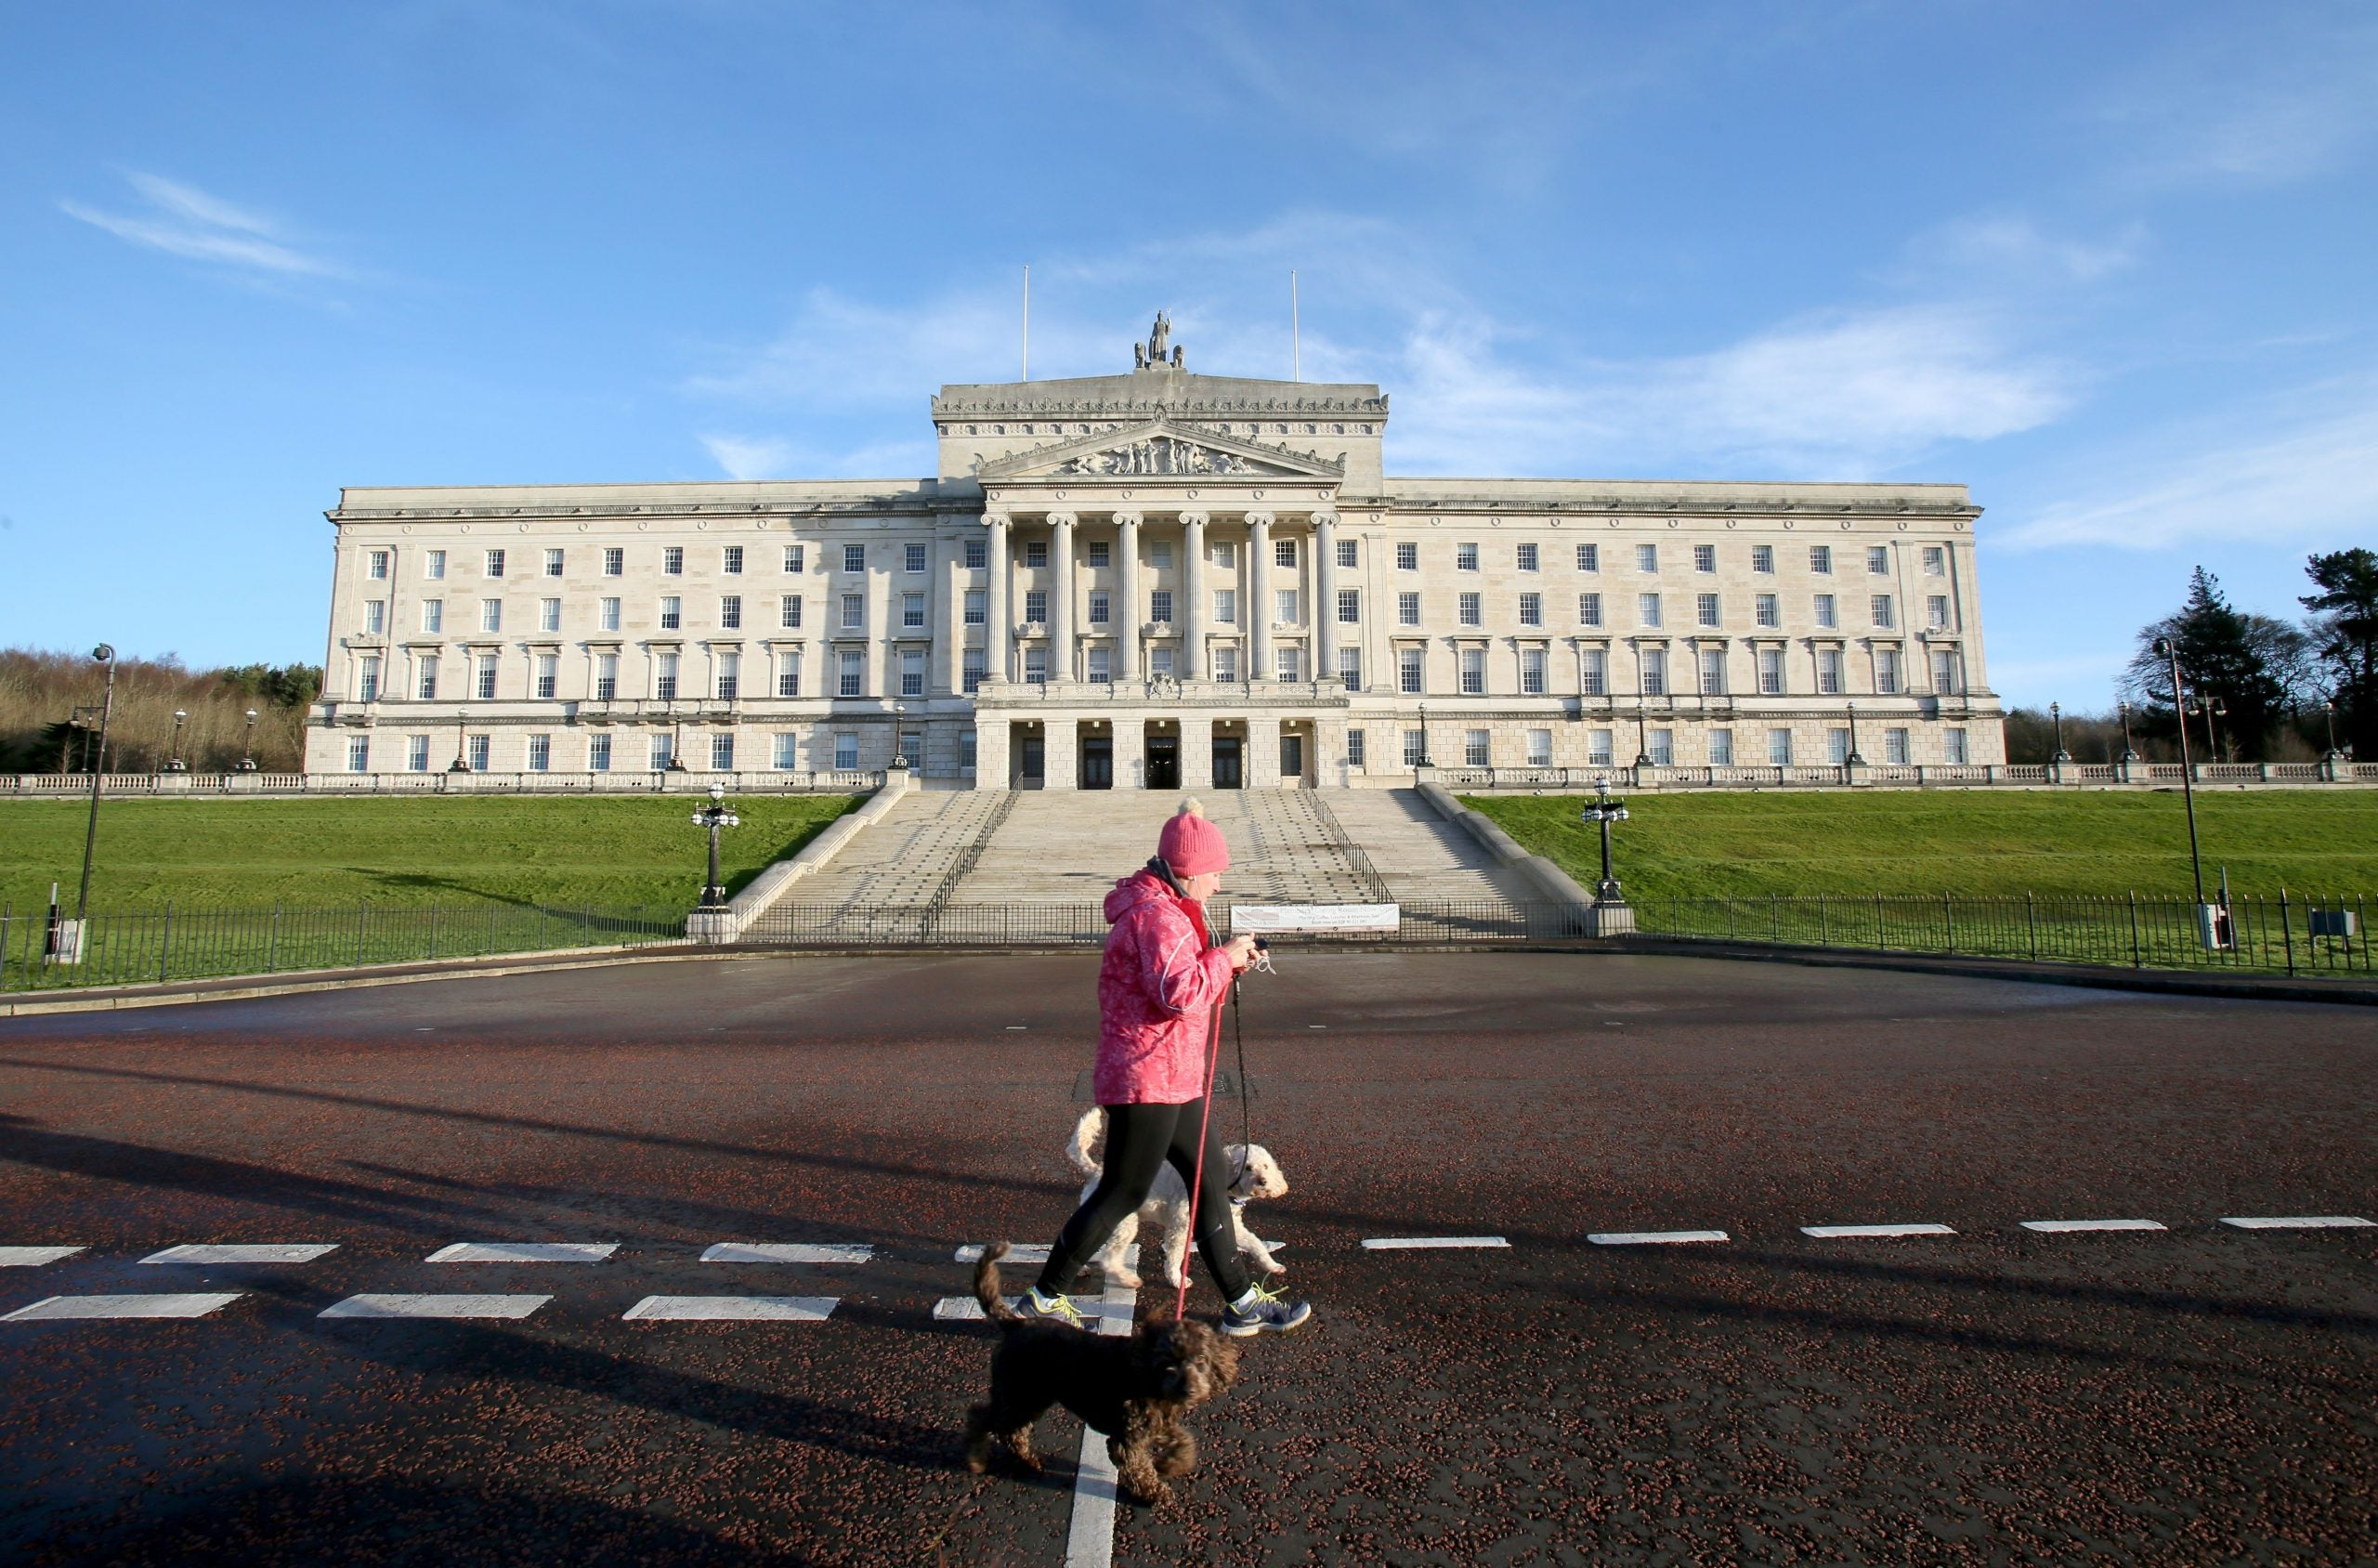 With no government at Stormont, public services in Northern Ireland are slowly decaying